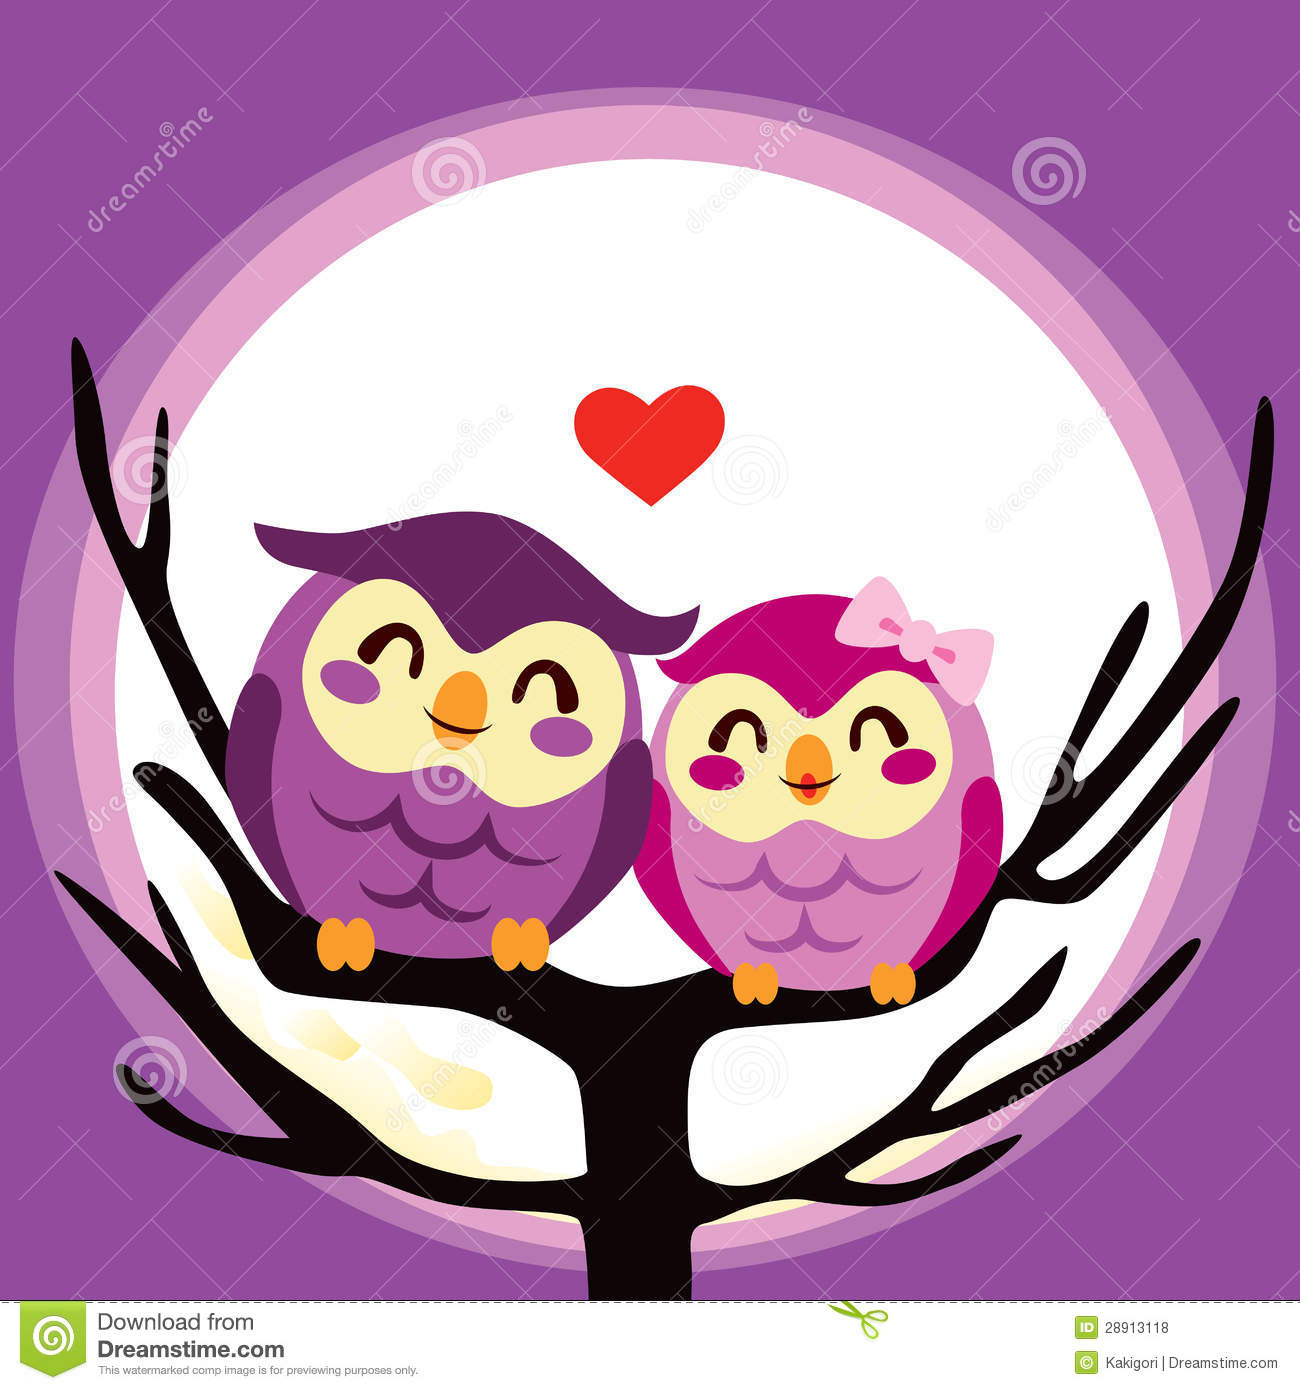 Must see Love Couple Cartoon HD Wallpaper Download - owl-love-couple-28913118  Graphic_624334.jpg